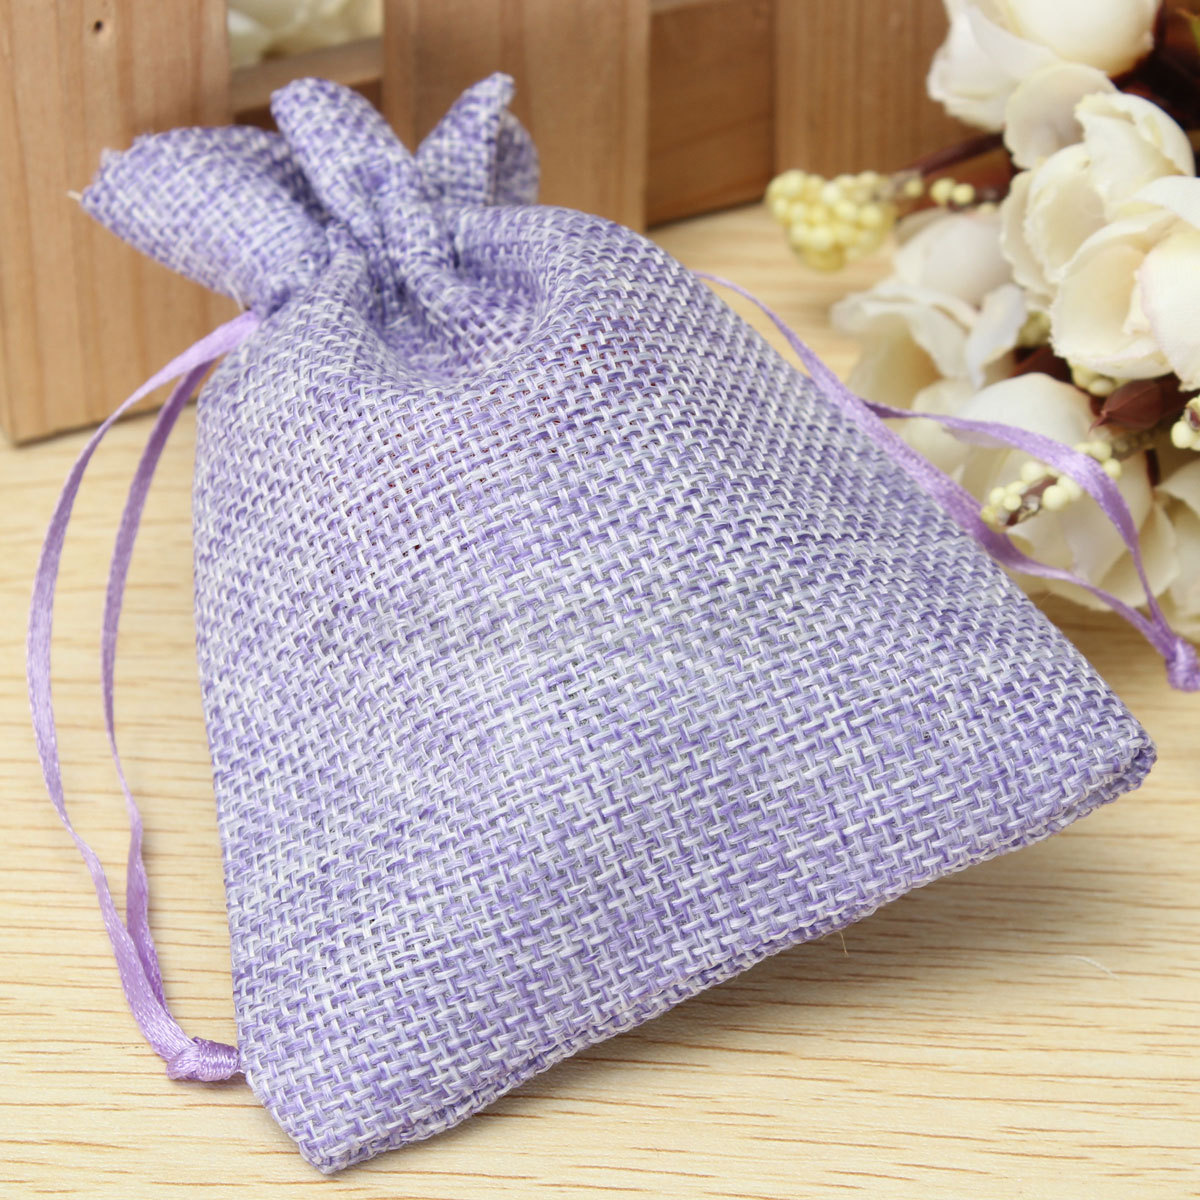 ... -Natural-Jute-Hessian-Drawstring-Pouch-Burlap-Wedding-Favor-Gift-Bags